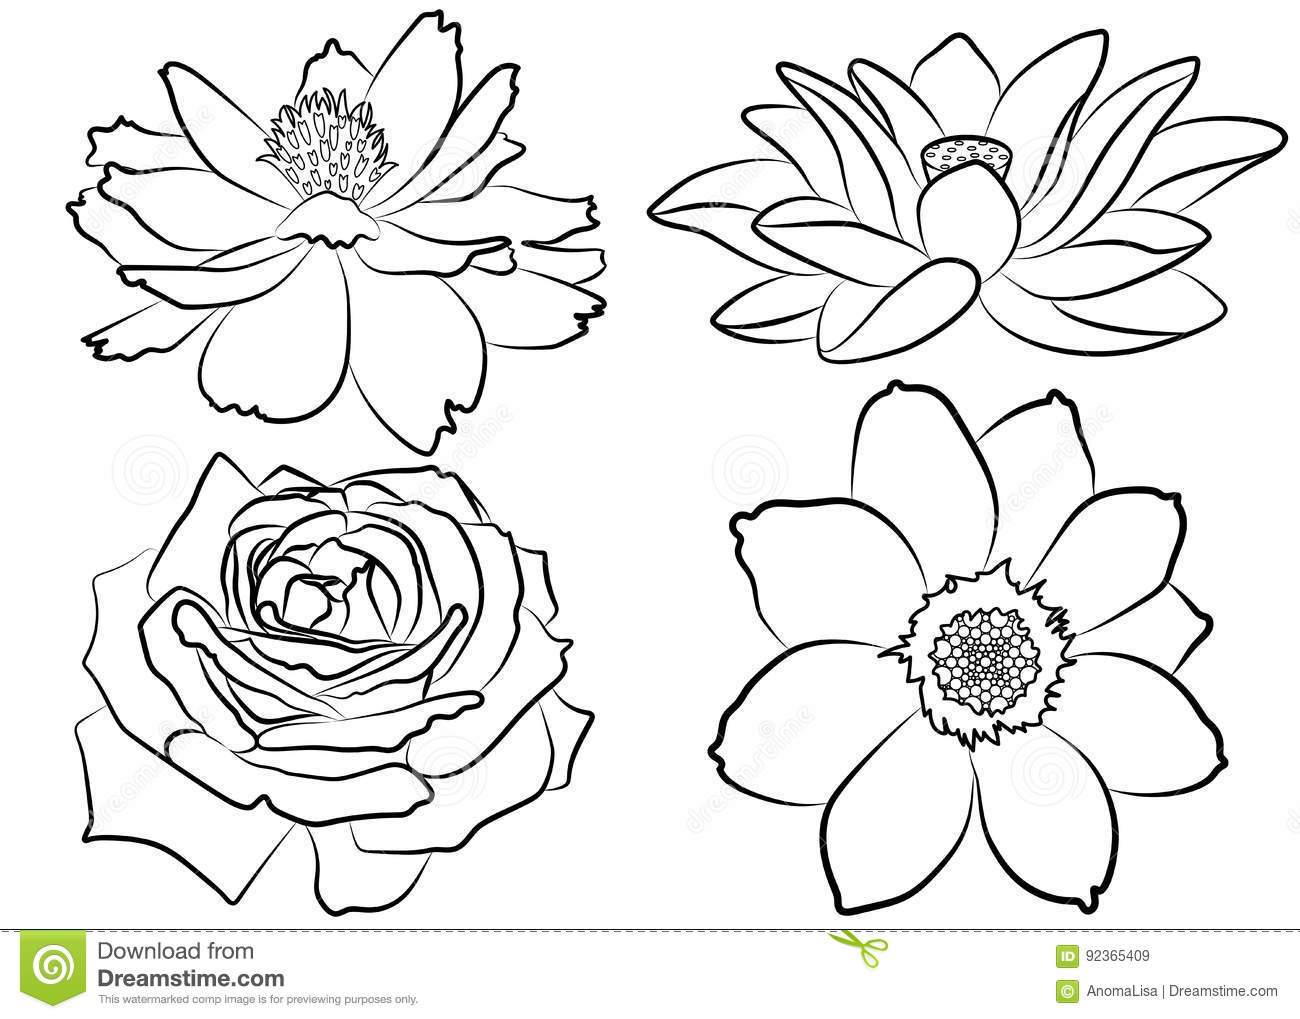 floral coloring page stock vector illustration of abstract 92365409